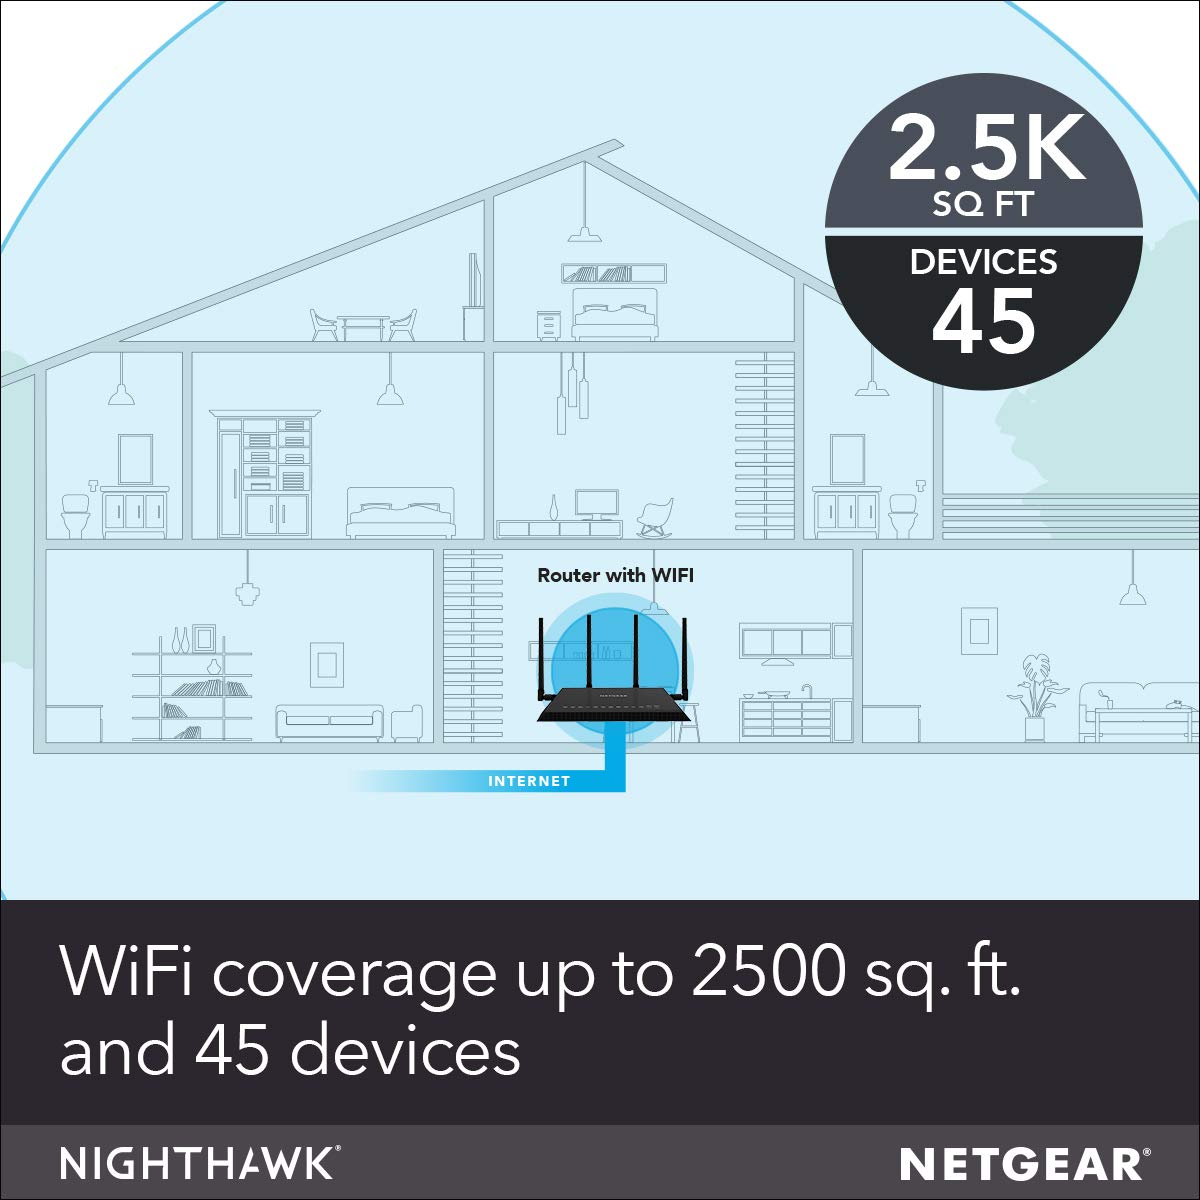 NETGEAR Nighthawk X4S Smart WiFi Router (R7800) - AC2600 Wireless Speed (up  to 2600 Mbps) | Up to 2500 sq ft Coverage & 45 Devices | 4 x 1G Ethernet,